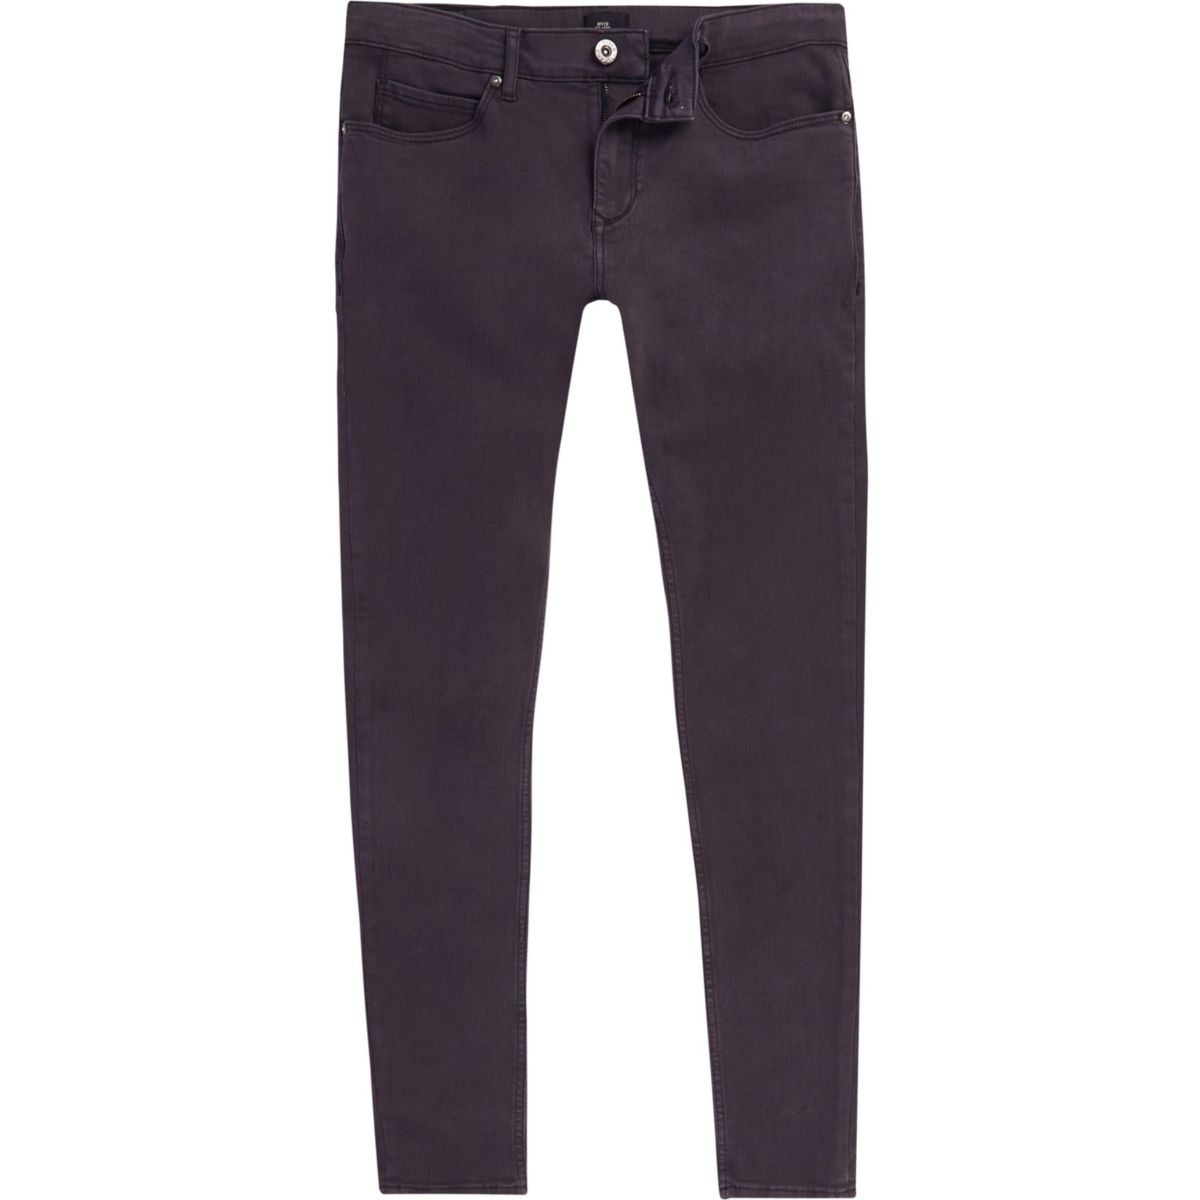 Grey Ollie super skinny spray on jeans